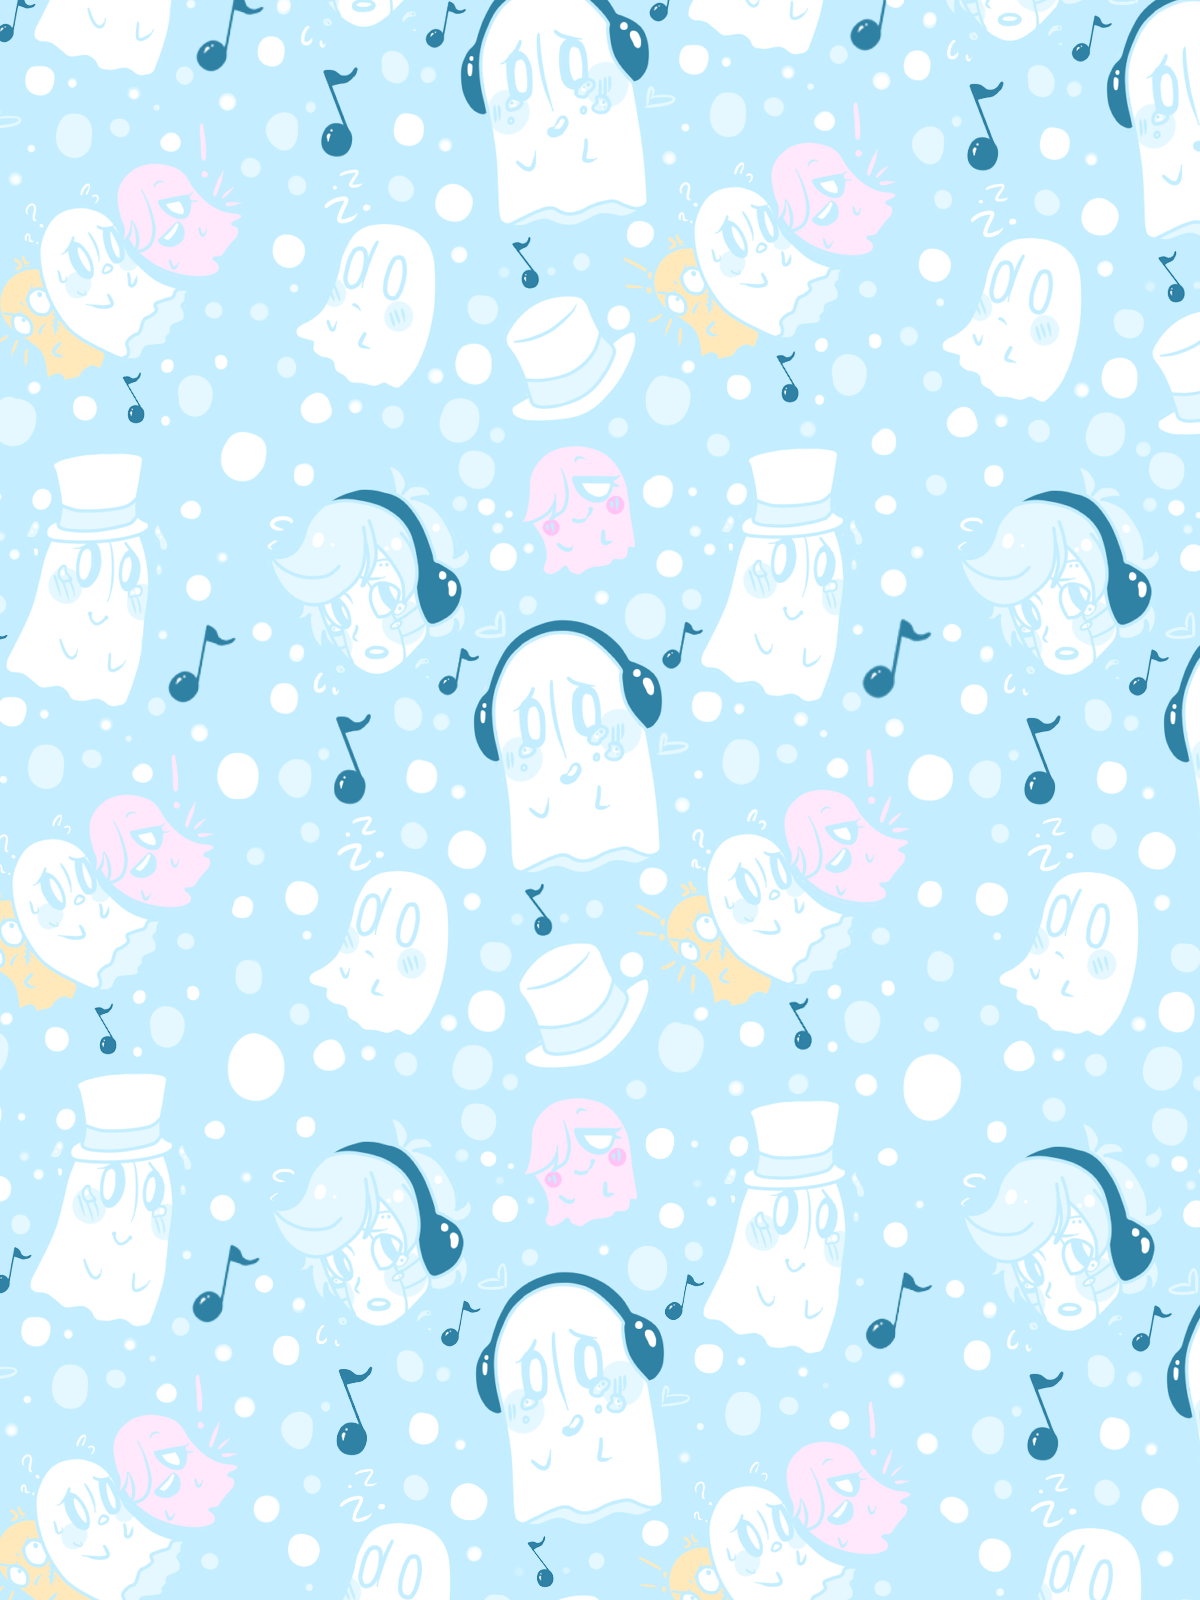 Undertale iphone wallpaper tumblr - Little Napstablook Wallpaper For My Phone P